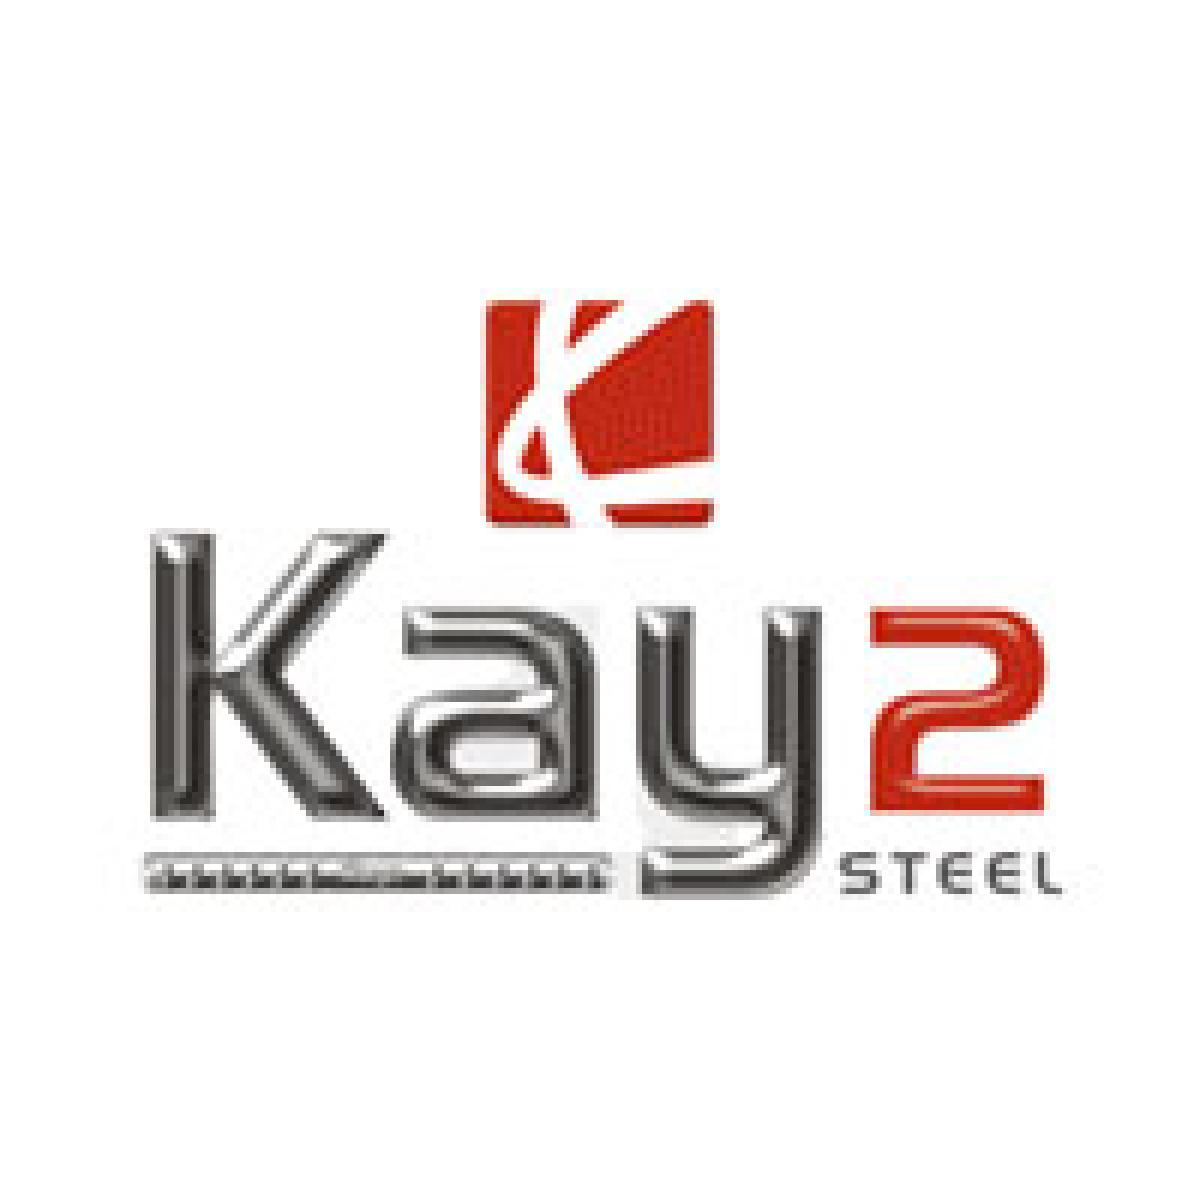 Kay2 Steel plans expansion through franchise model